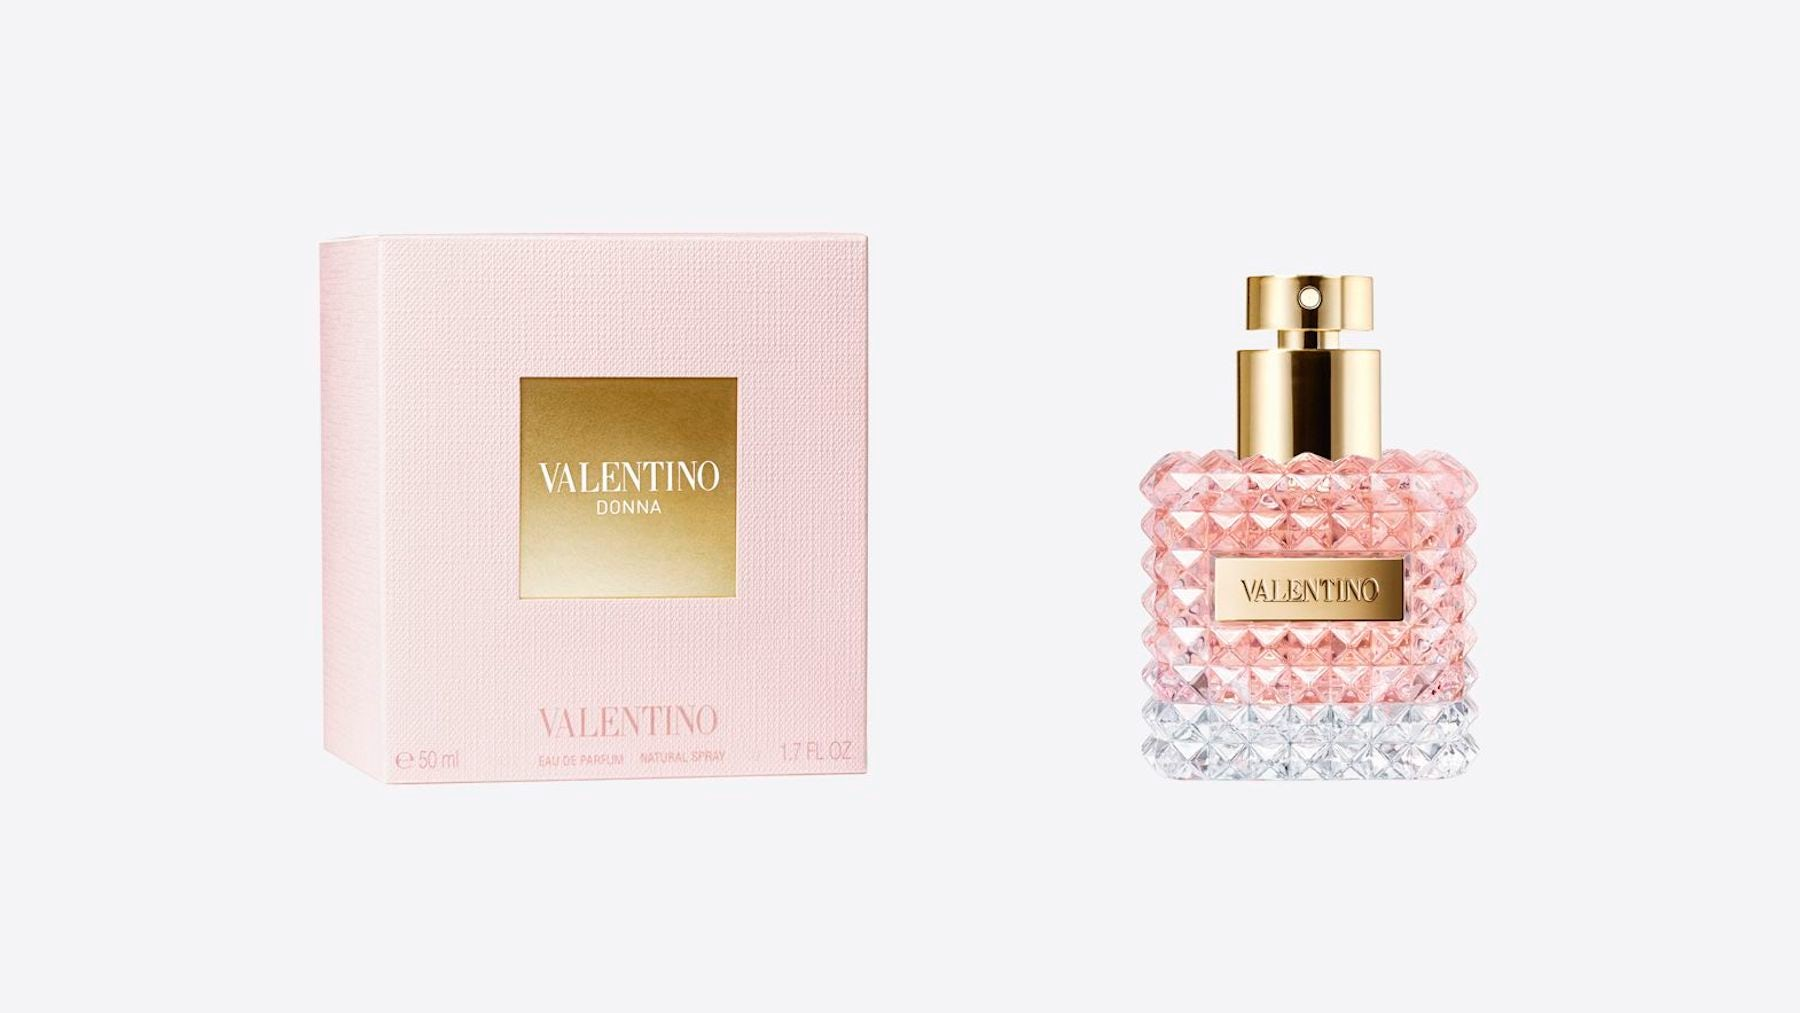 L'Oréal Wins Valentino Perfume and Beauty Licence